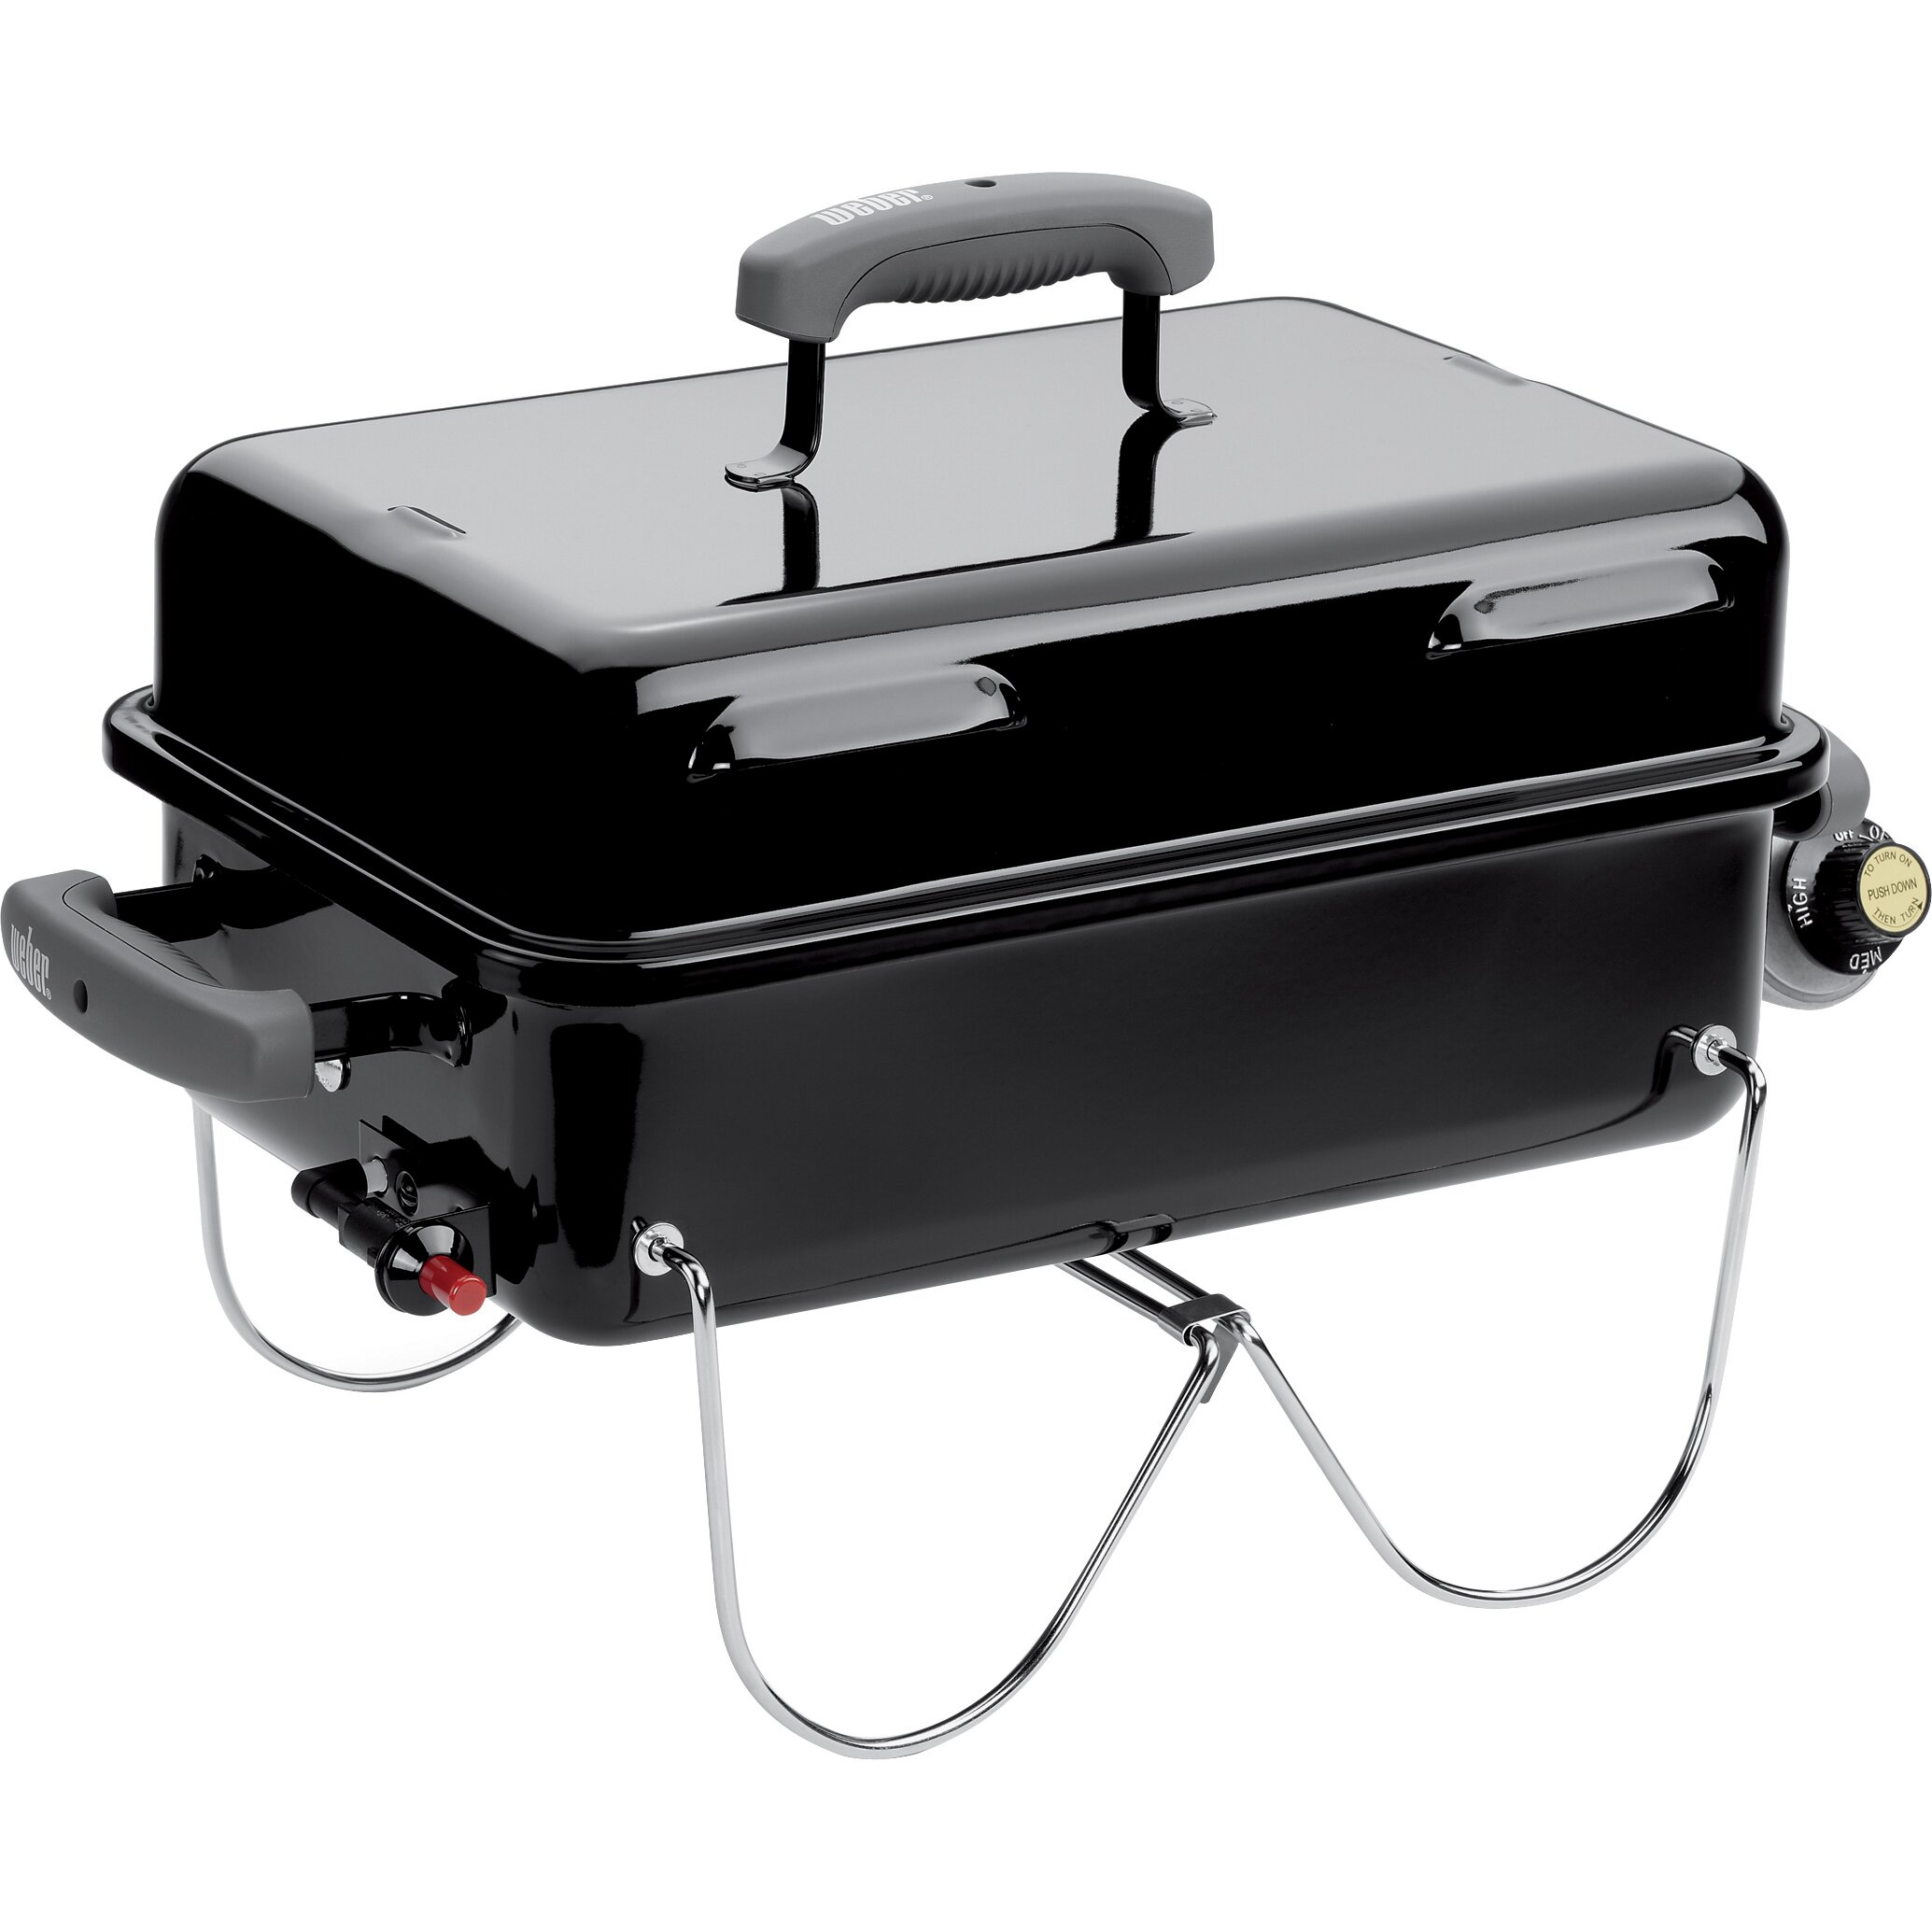 Dating weber grill Good housekeeping